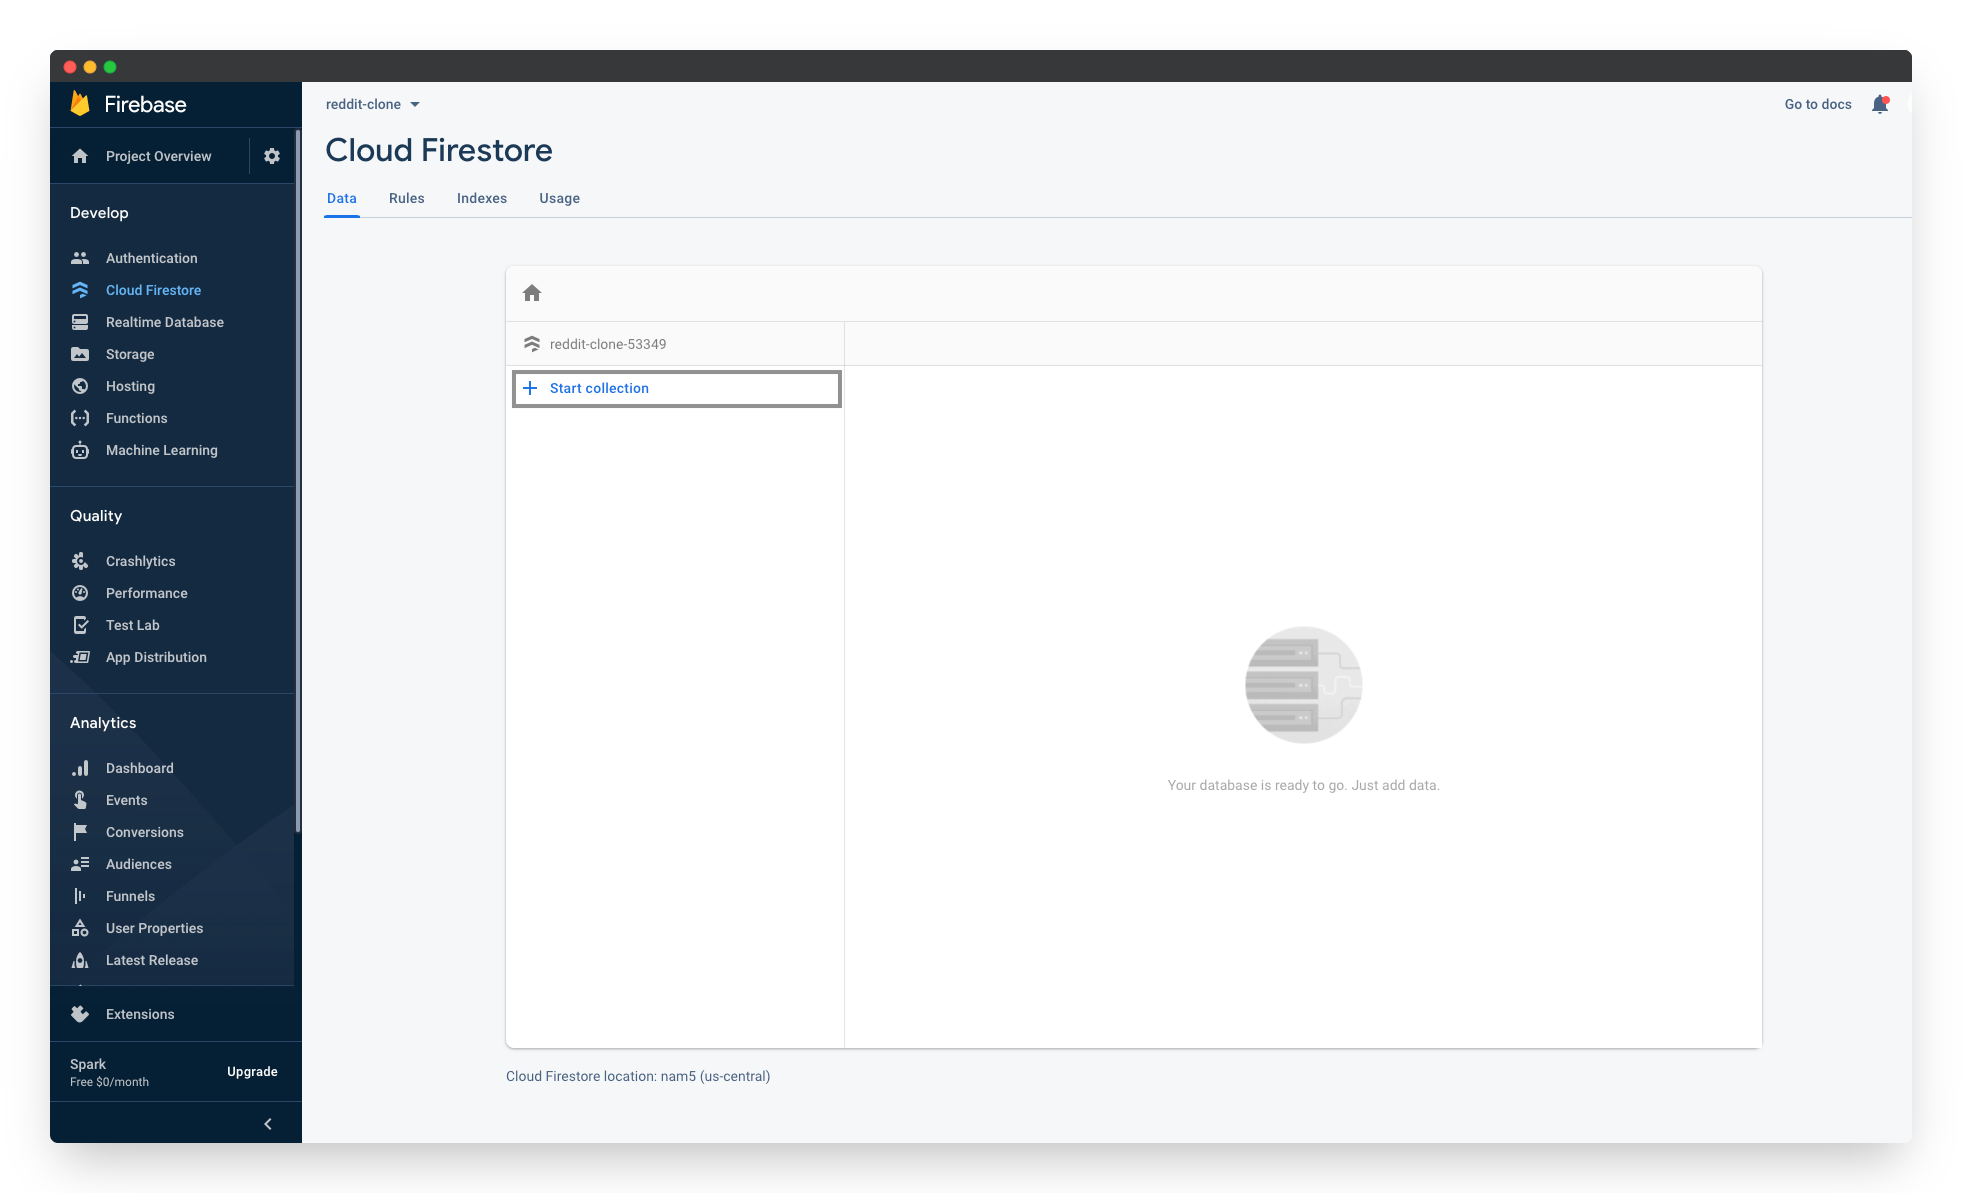 Adding a new collection to the Firebase Cloud Firestore:Step 1